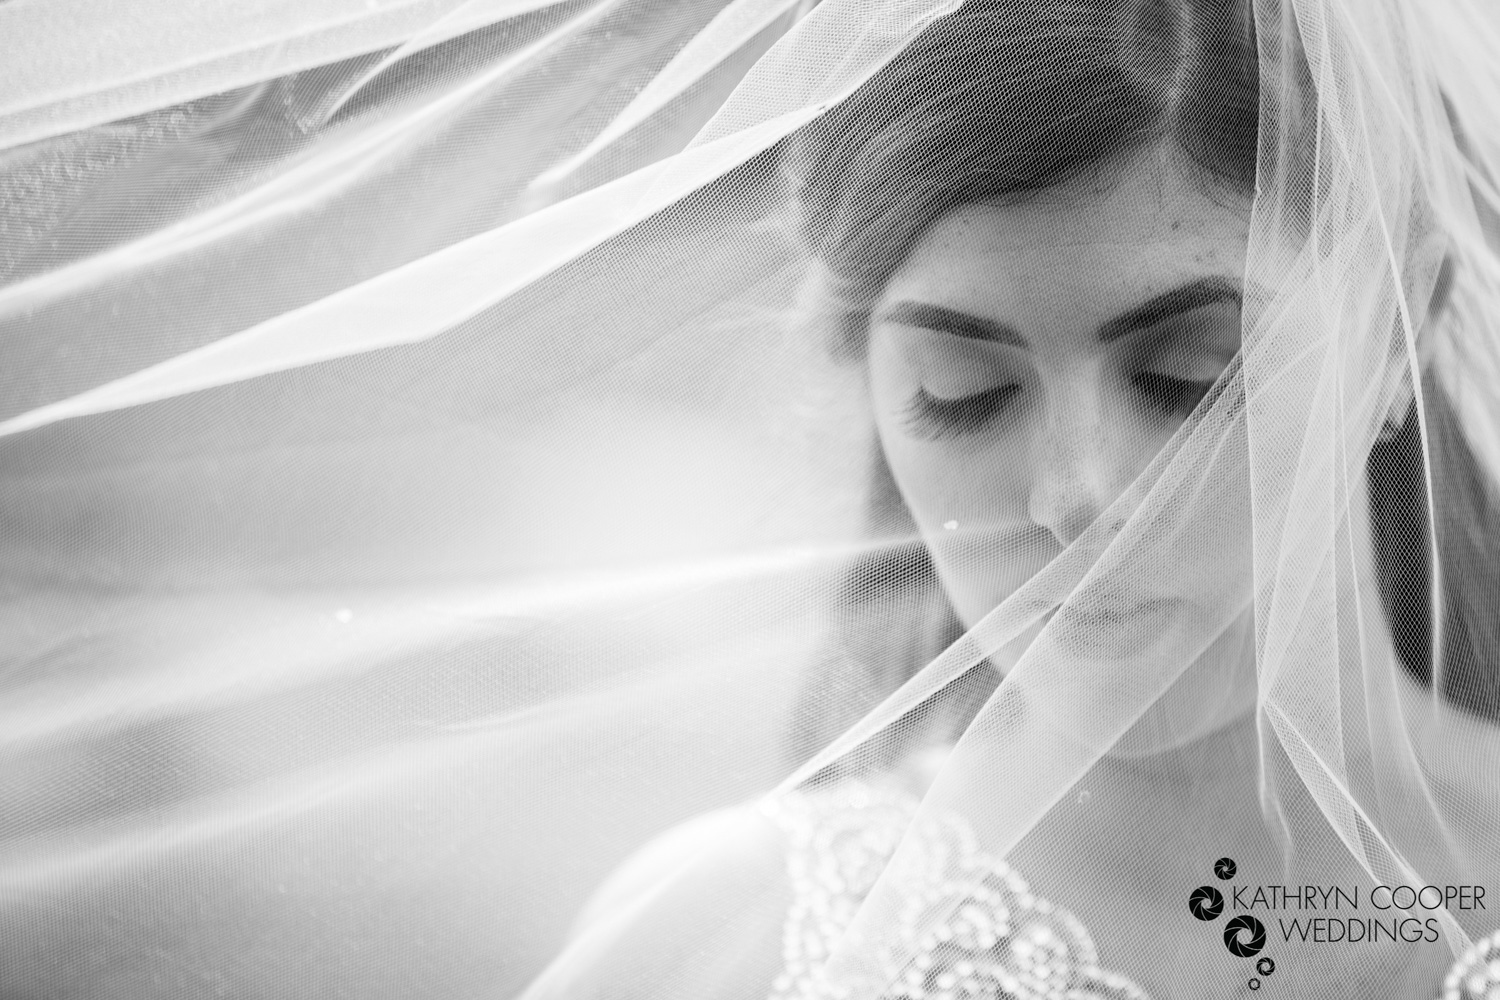 Black and white veil shot nyc elopement photographer Katherine cooper